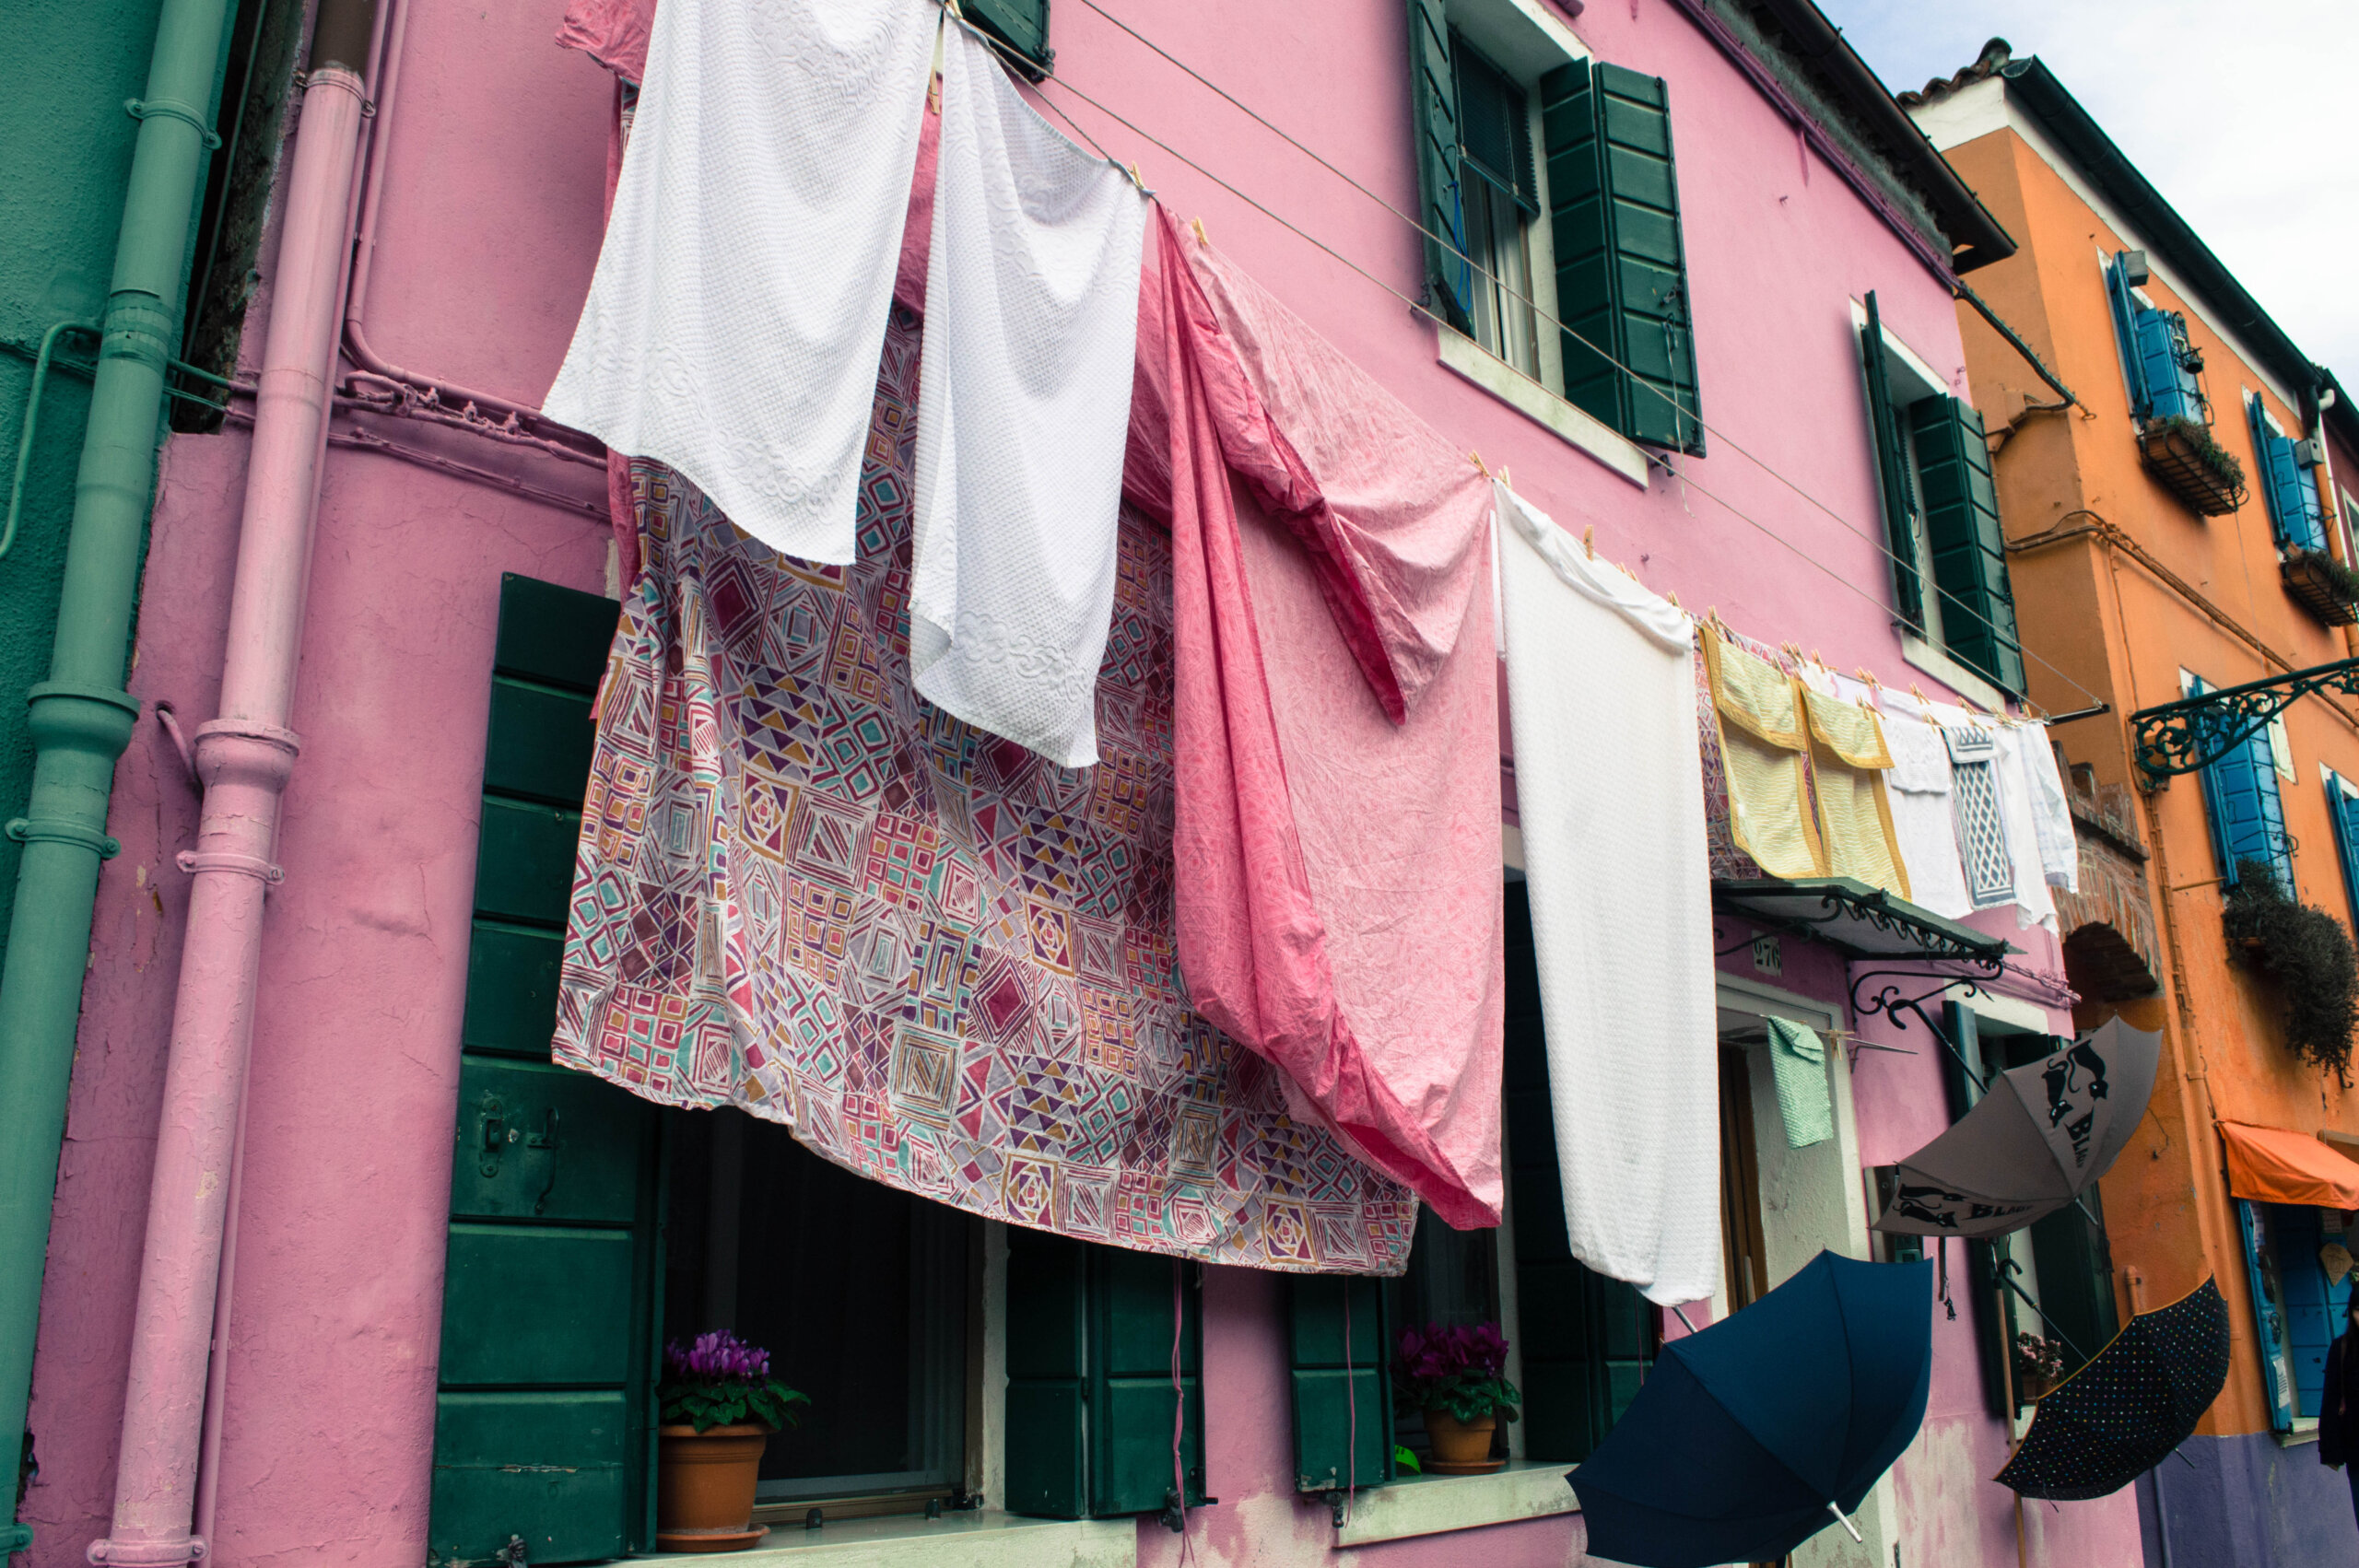 Laundry and umbrellas hanging in Burano Italy